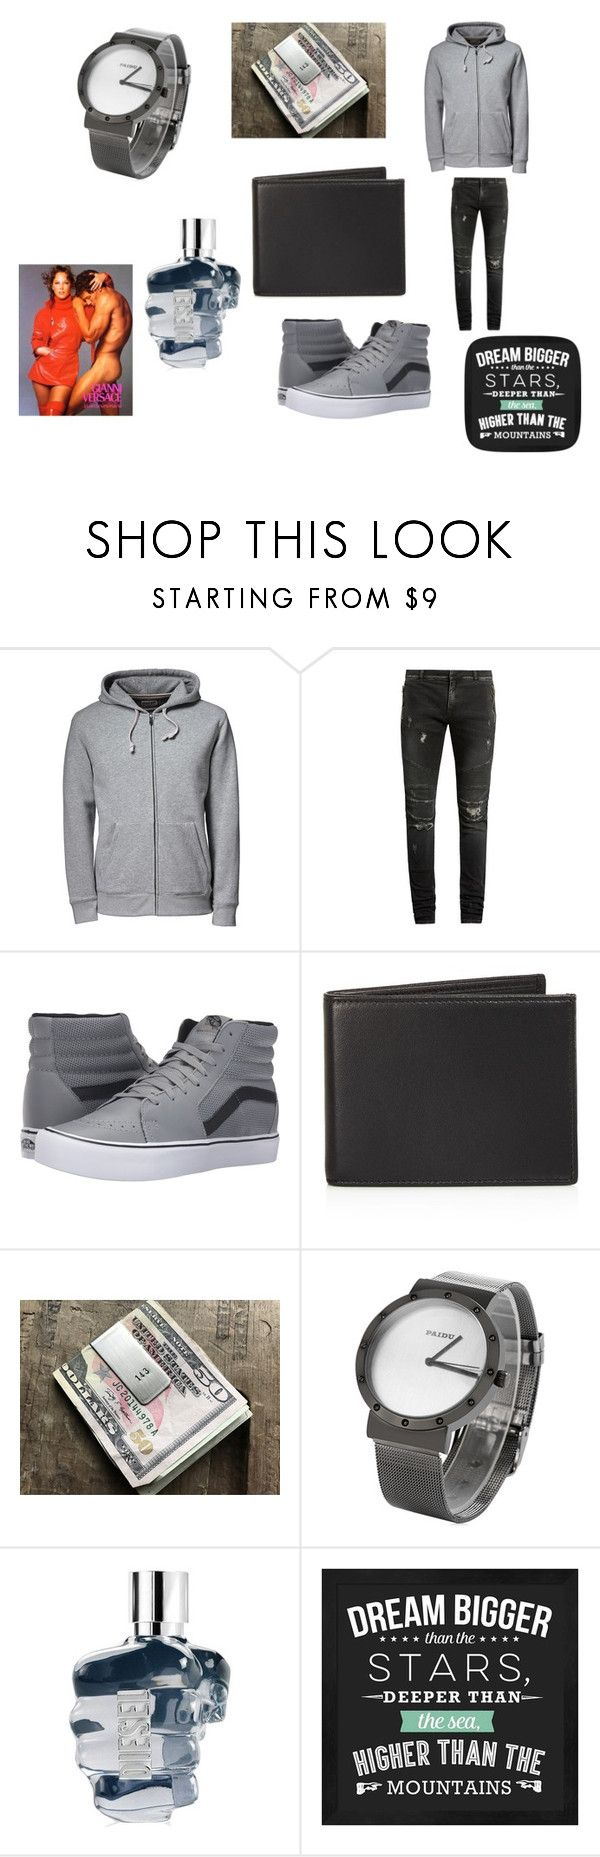 """""""Thor and Hercules"""" by nadaanja ❤ liked on Polyvore featuring Lands' End, Balmain, Vans, The Men's Store, Diesel, men's fashion and menswear"""